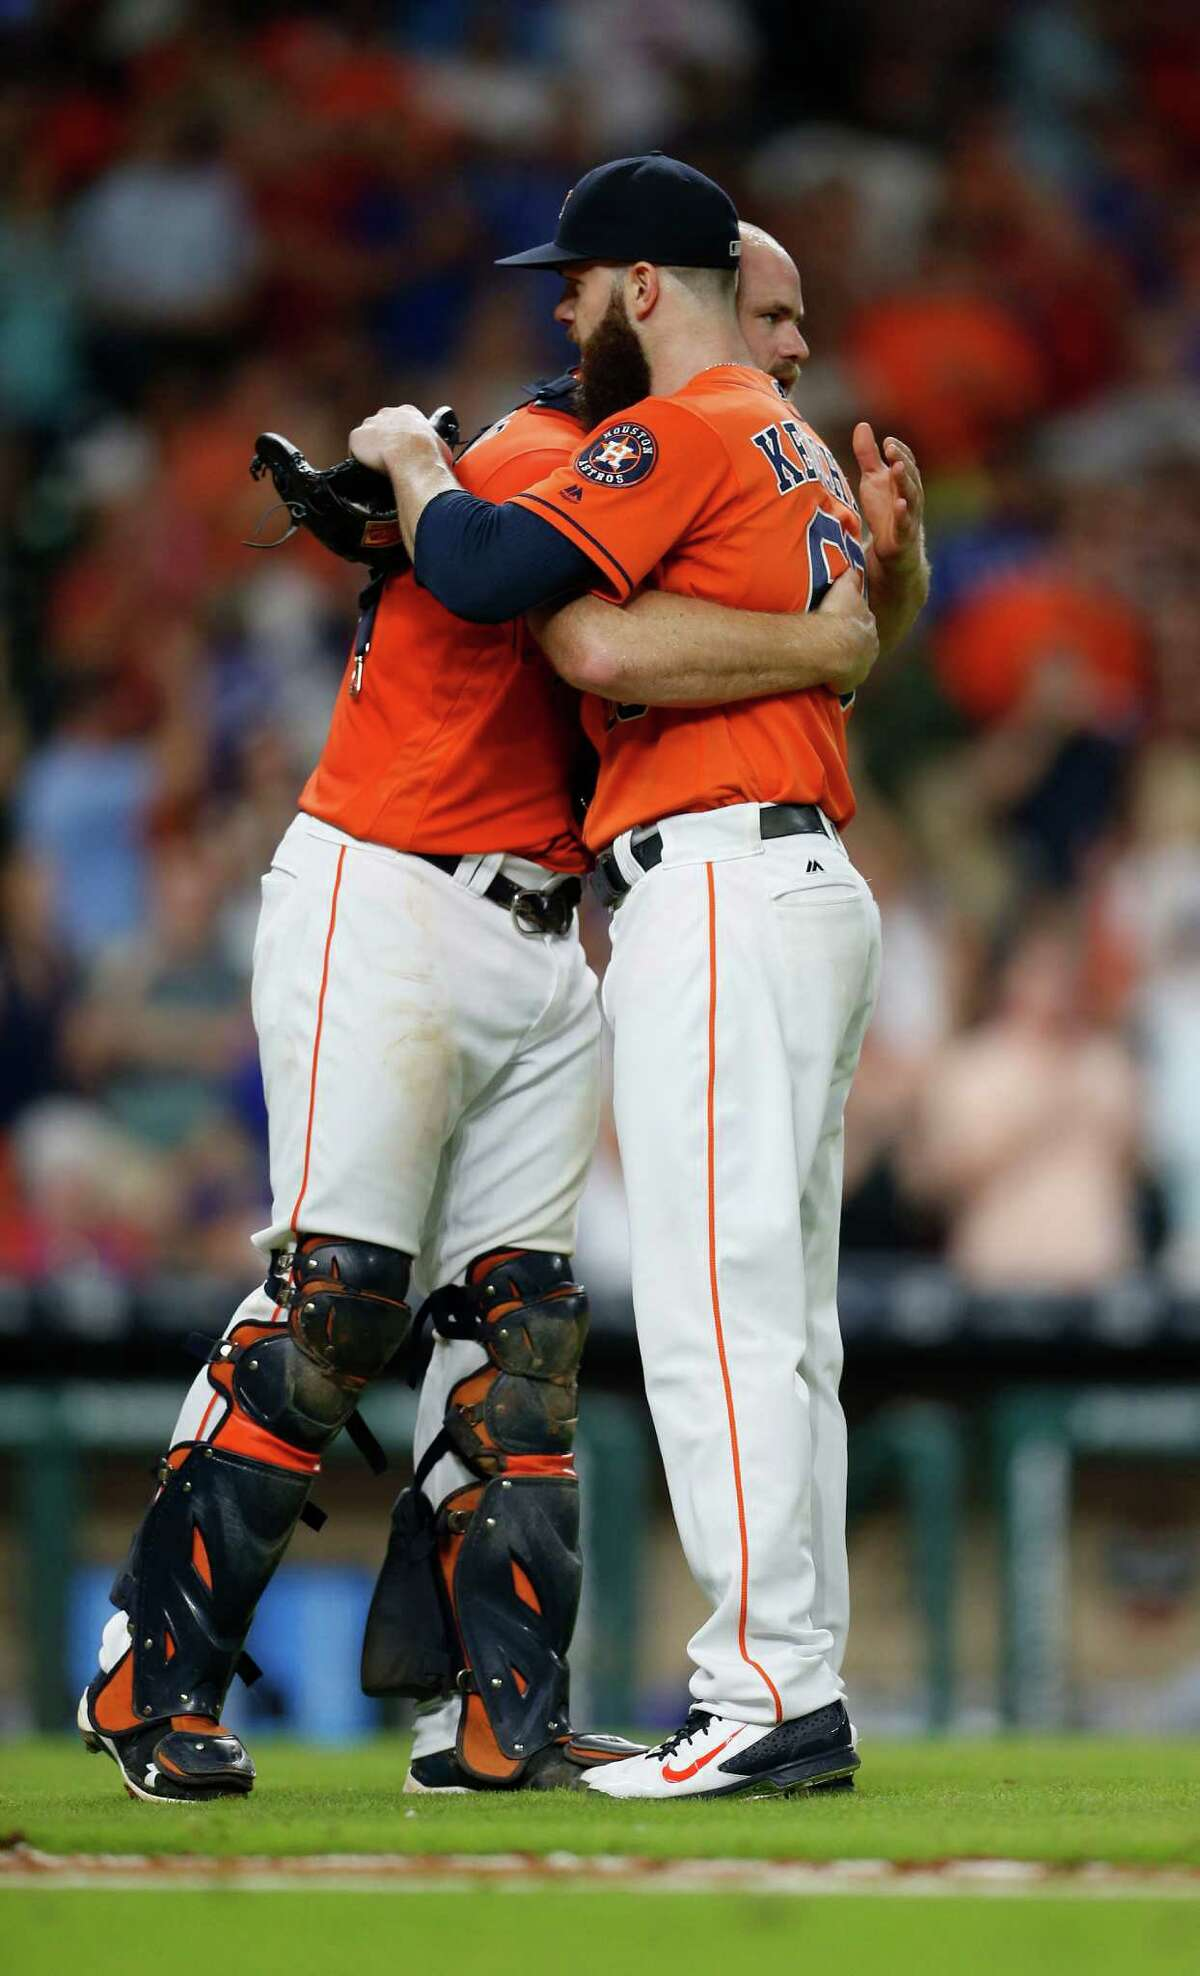 Aug. 5: Astros 5, Rangers 0 Houston Astros starting pitcher Dallas Keuchel (60) hugs catcher Evan Gattis (11) as they celebrated after the Astros 5-0 win over the Texas Rangers during an MLB game at Minute Maid Park, Friday, Aug. 5, 2016, in Houston.